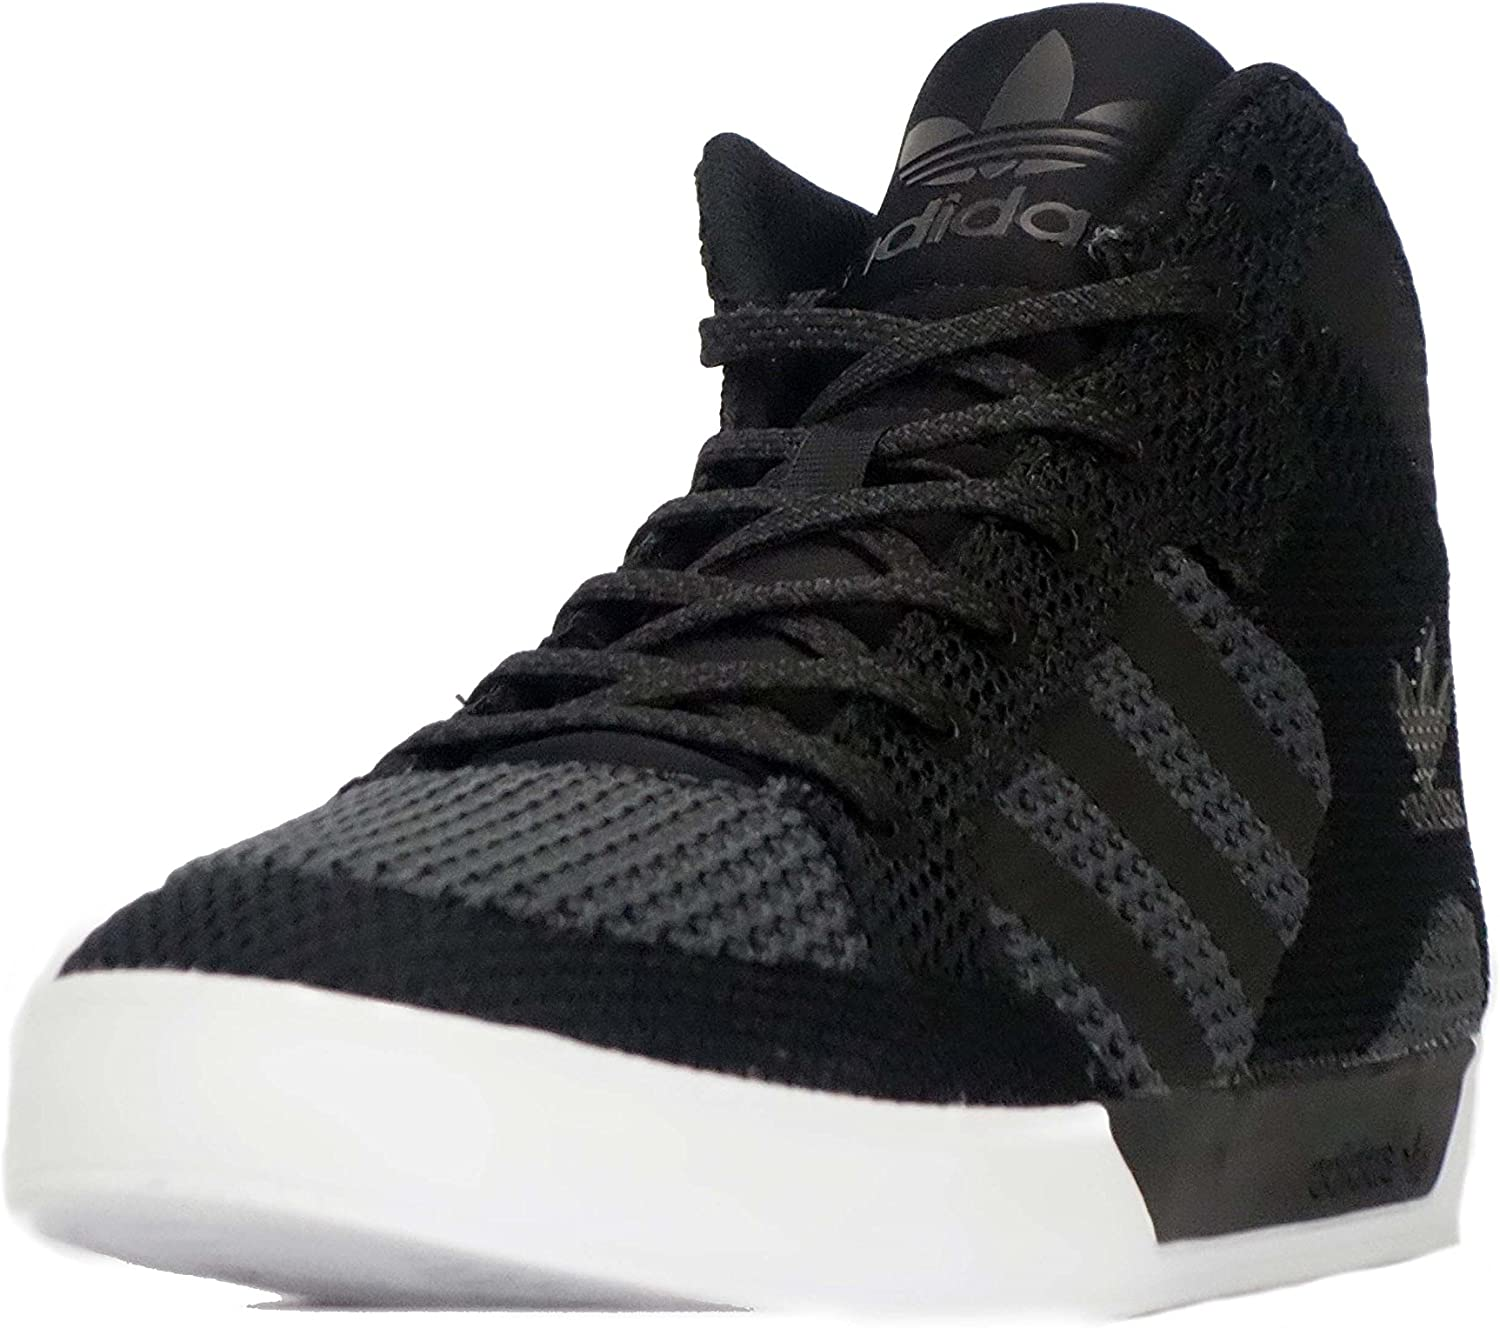 till salu grossistpris populära butiker adidas Originals Hardcourt Hi Knit Men's Shoes (UK 8) Black/Black ...